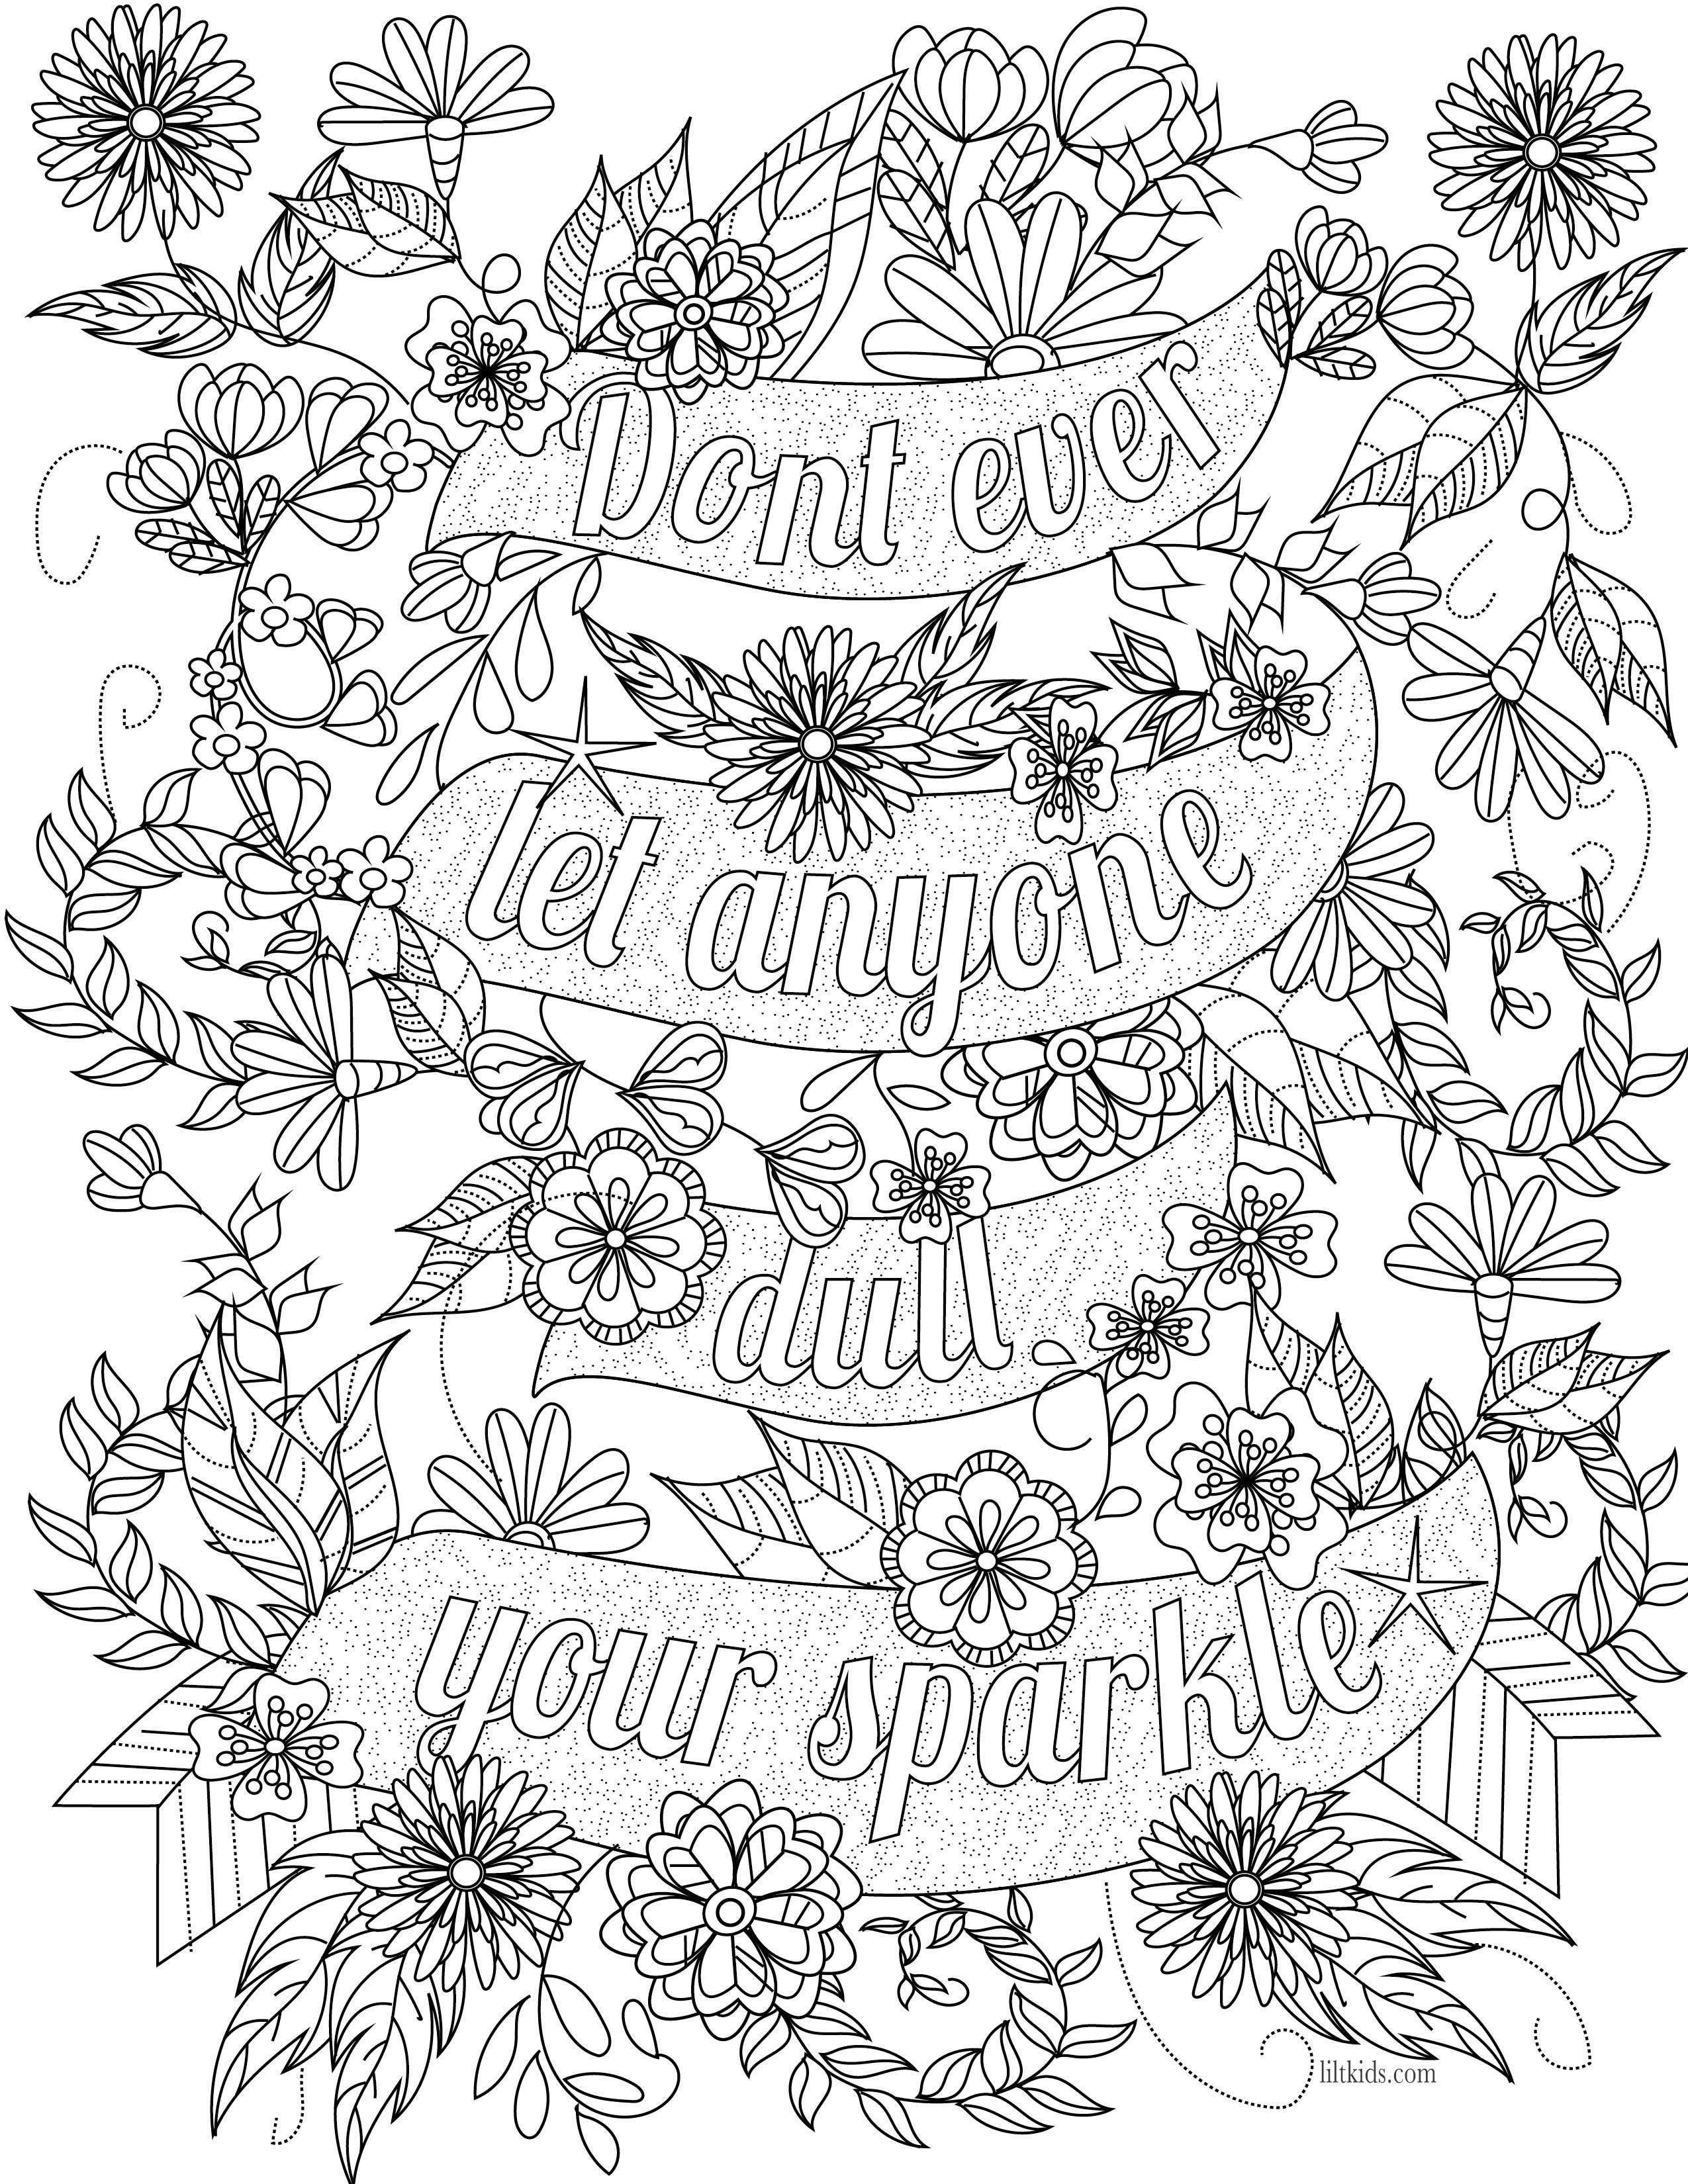 Free inspirational quote adult coloring book image from liltkids com see more free adult coloring book images at liltkids com pin now color later